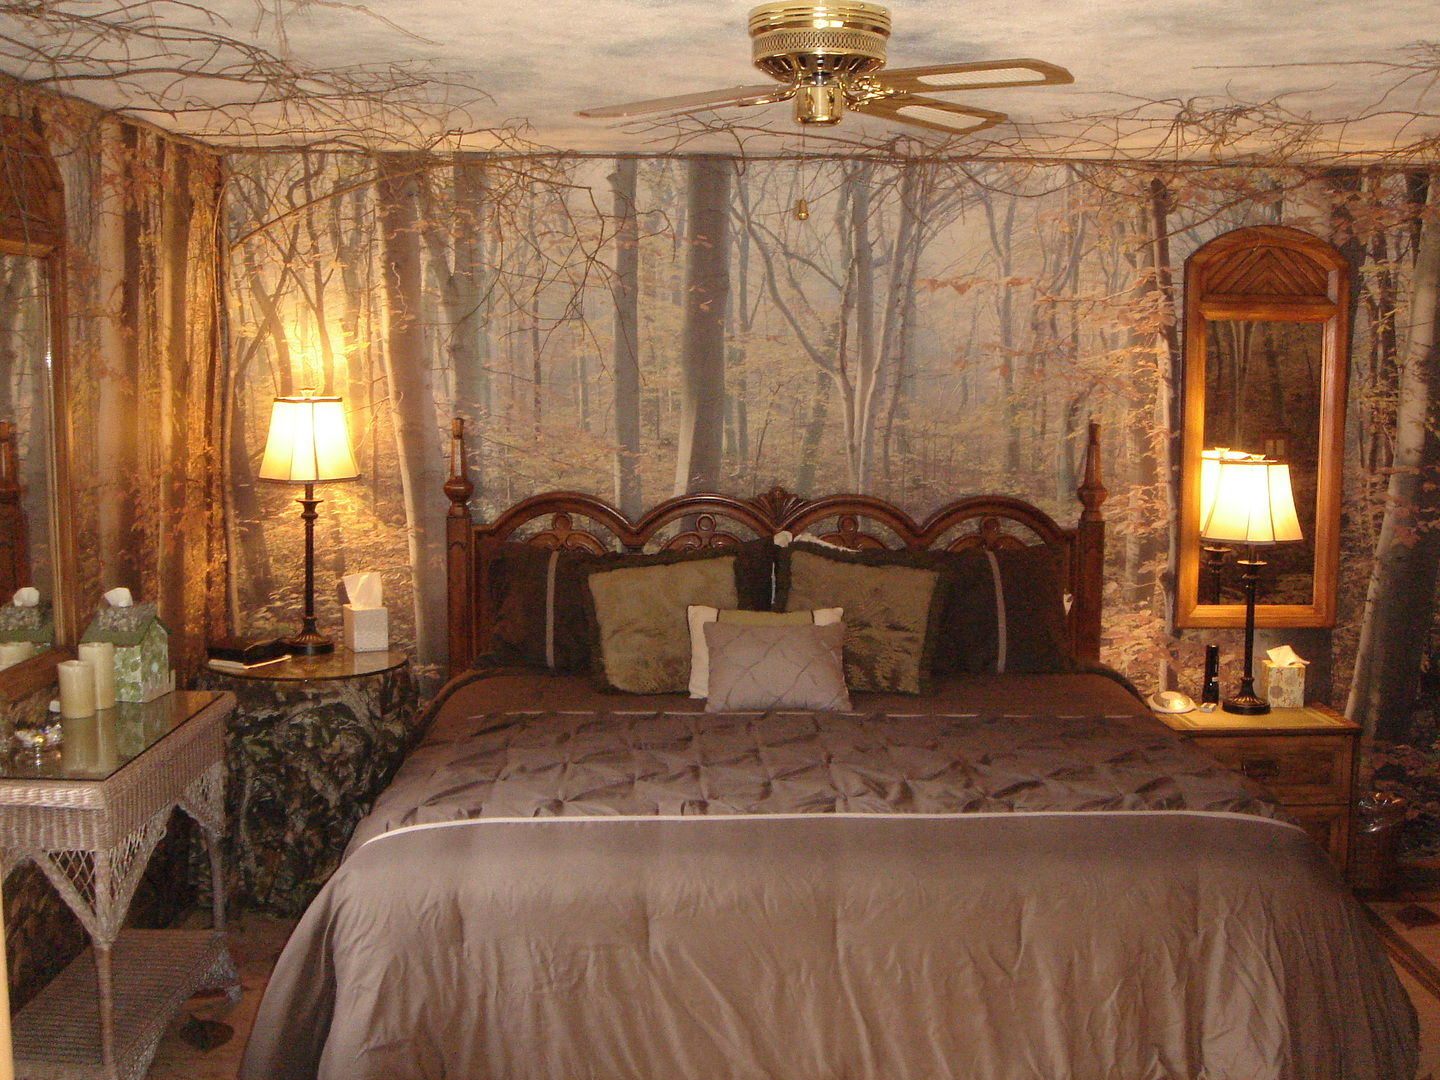 A bedroom with a large bed in a room at Inn by the Mill.